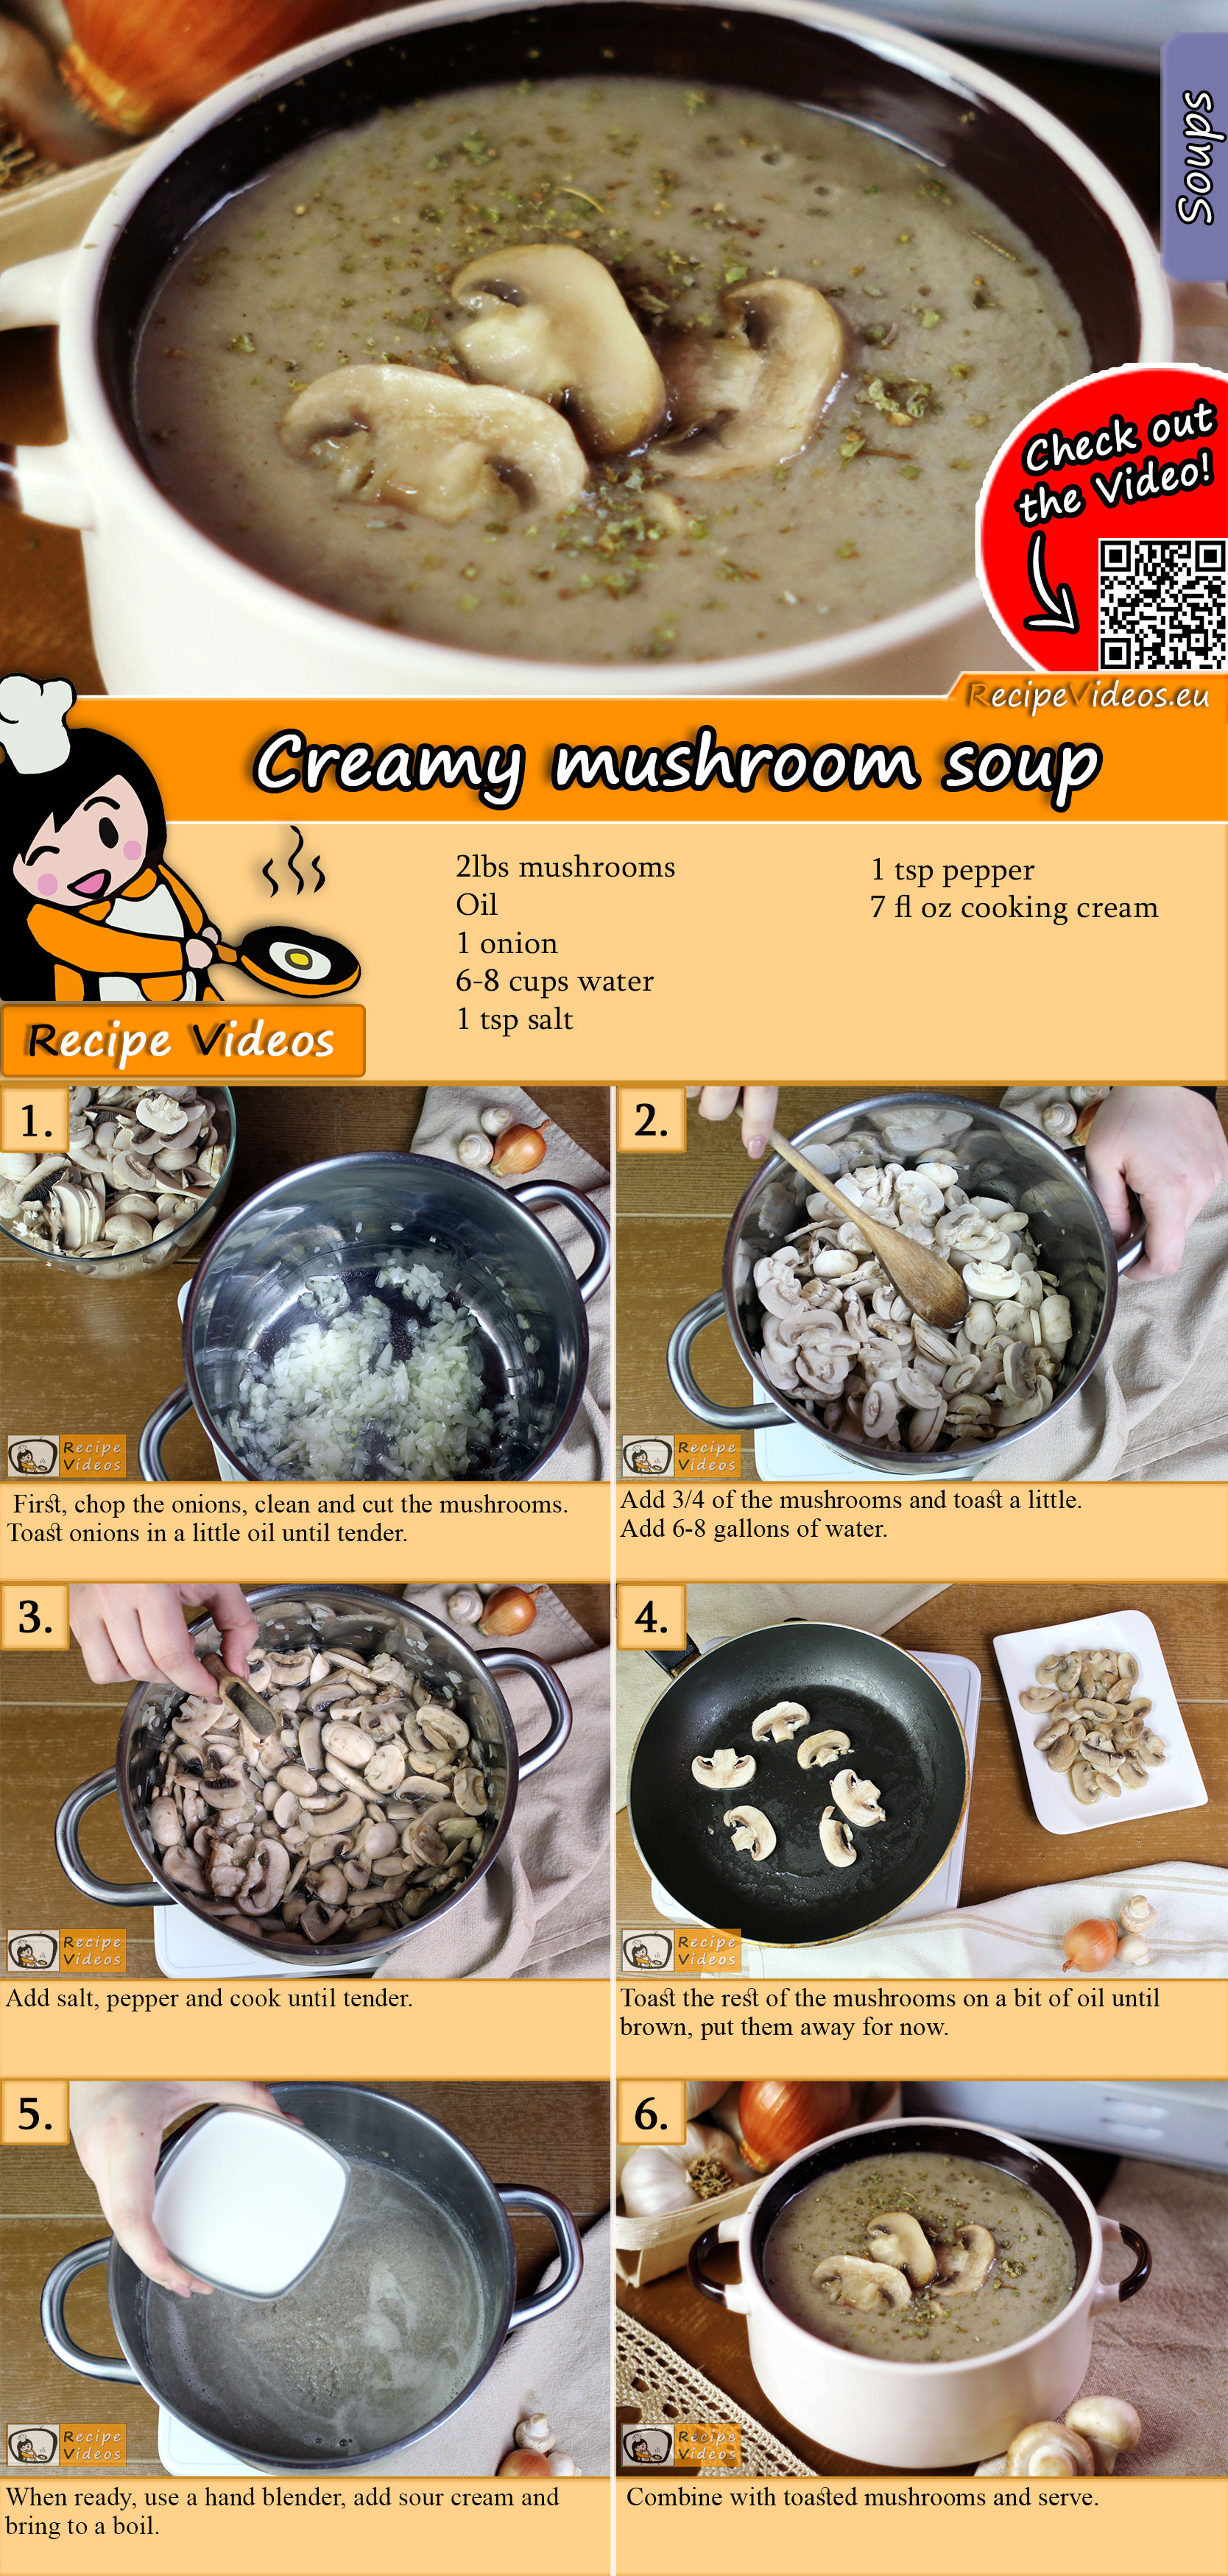 Creamy mushroom soup recipe with video